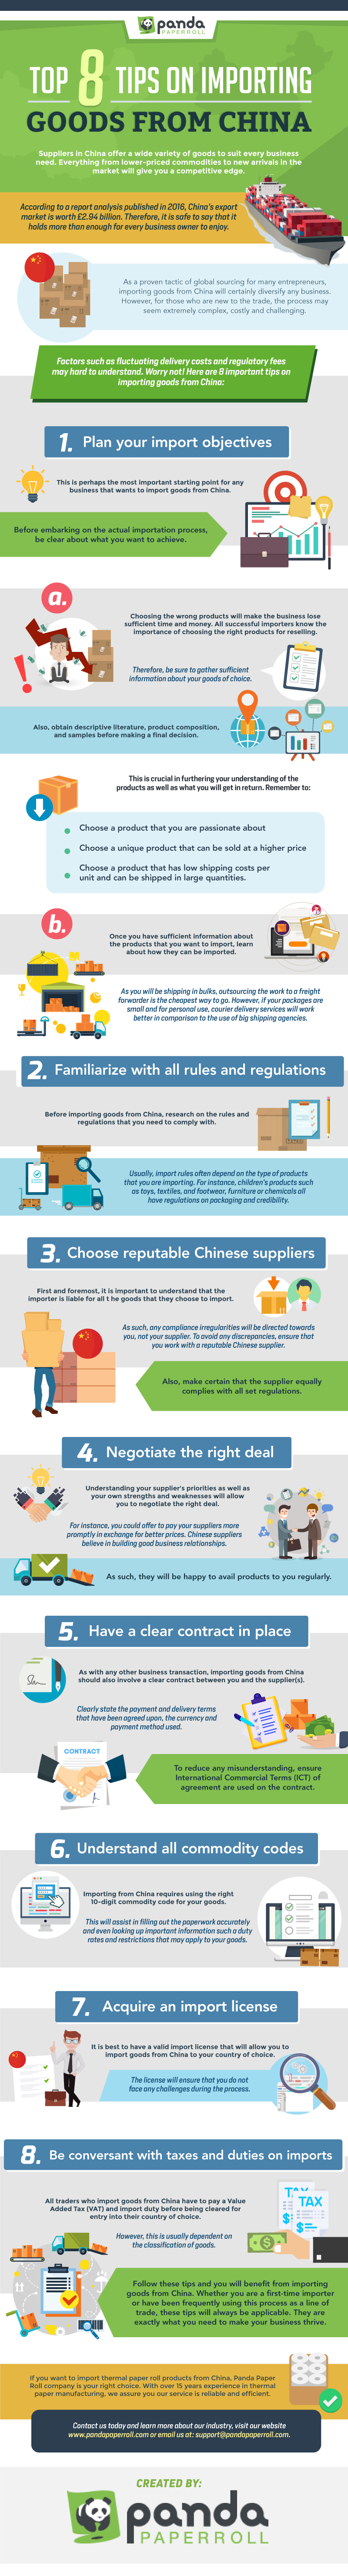 Top 8 Tips On Importing Goods From China (Infographic